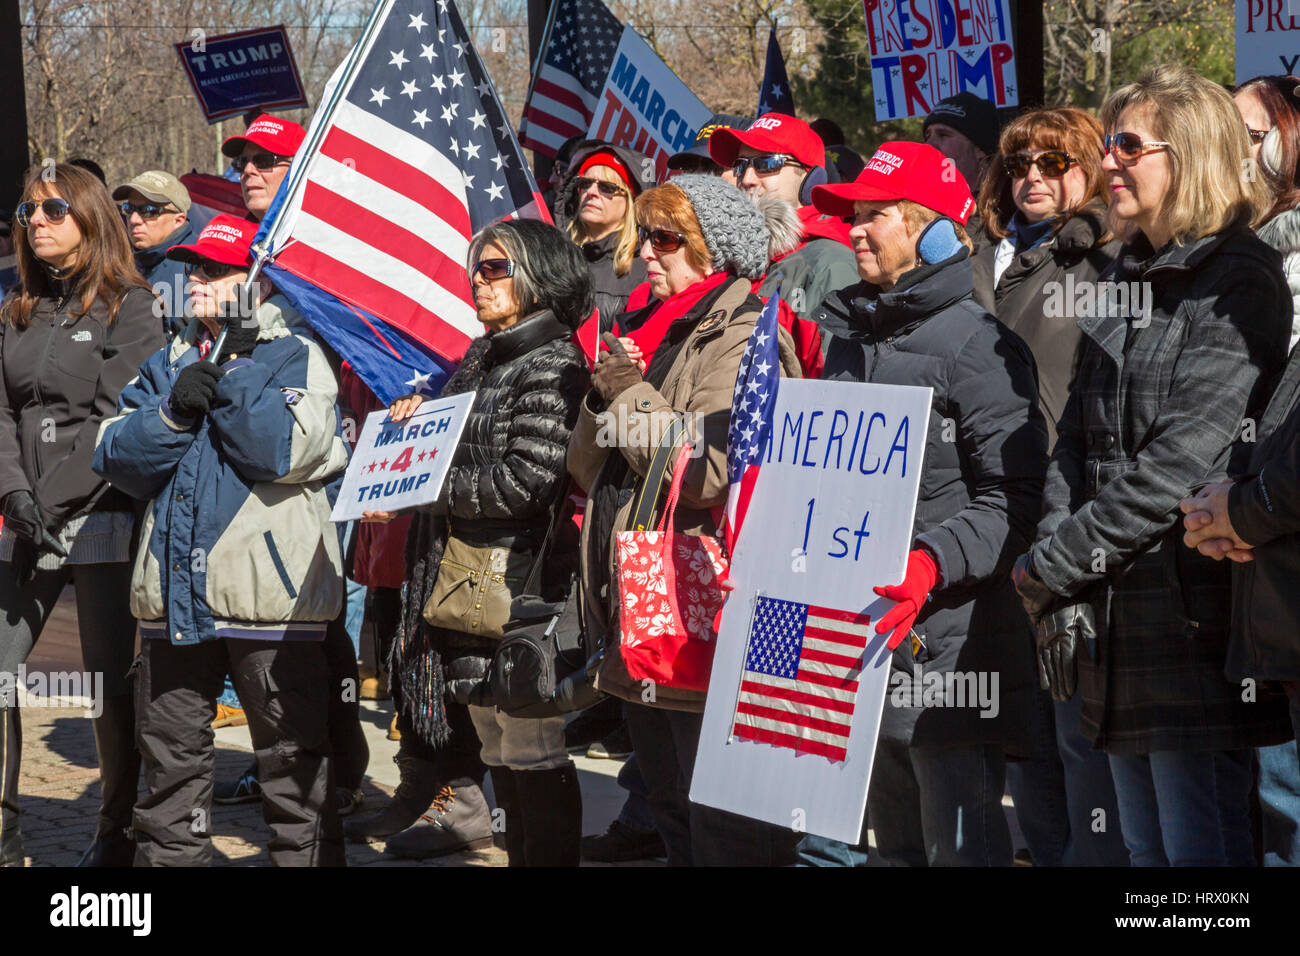 Sterling Heights, Michigan, USA. 4th Mar, 2017. Supporters of President Donald Trump at a 'March 4 Trump' - Stock Image